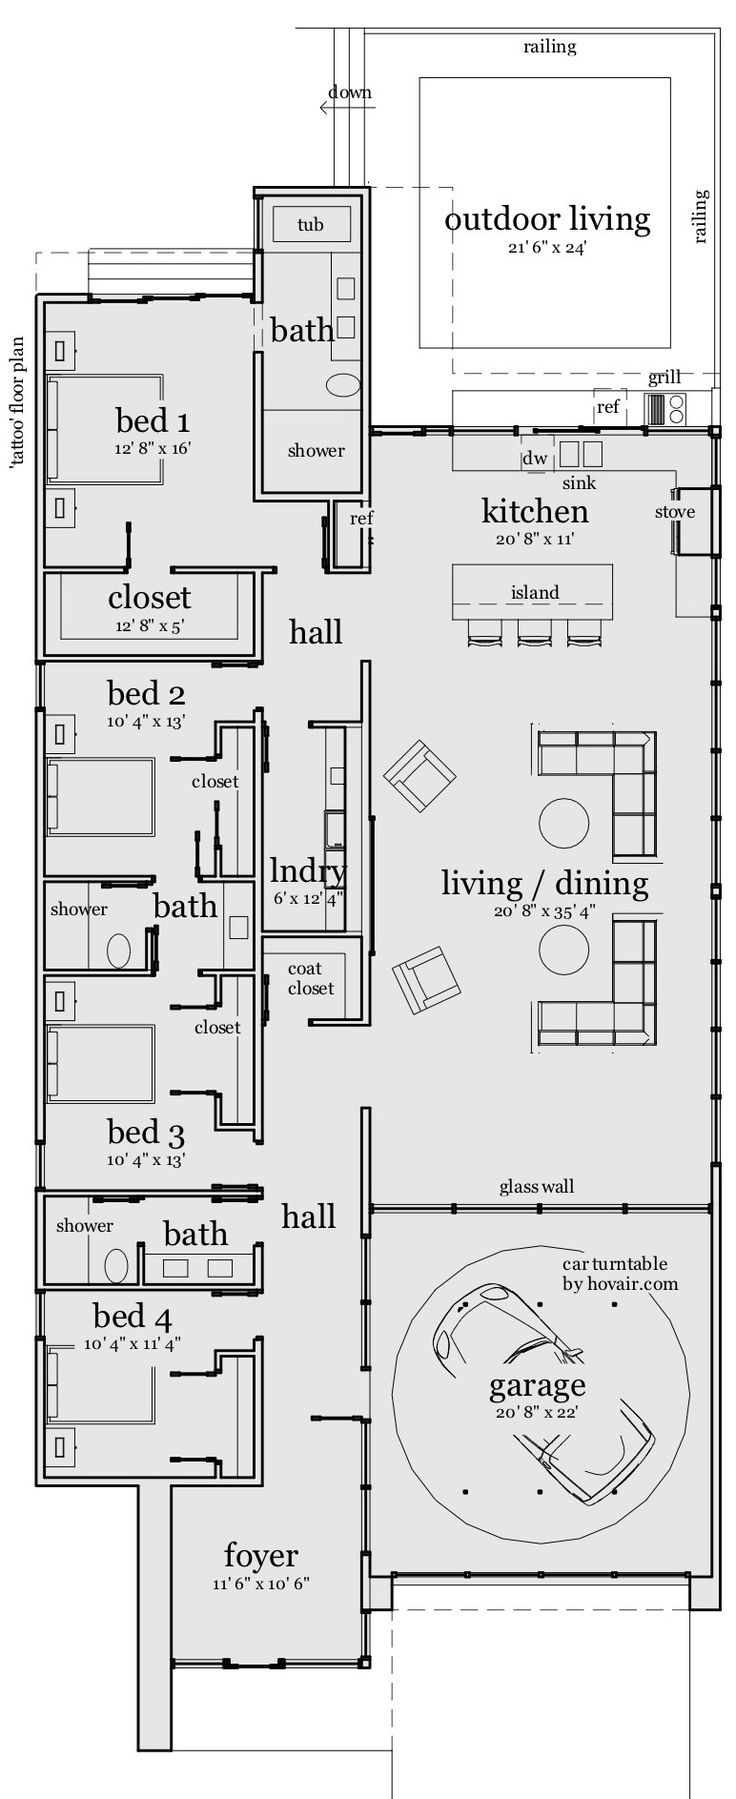 670 best house floor plans images on pinterest | house floor plans